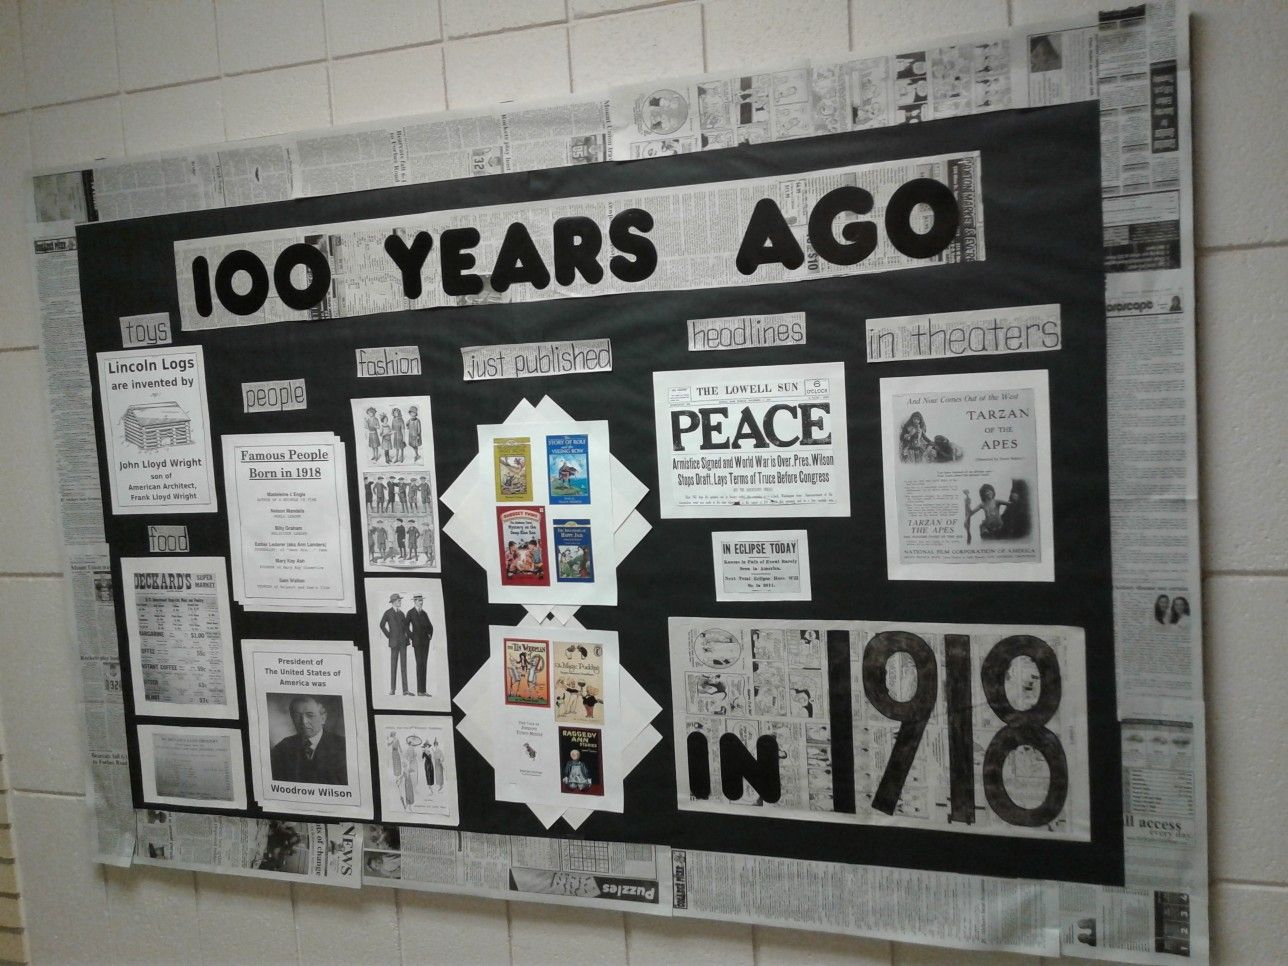 100th Day Of School Bulletin Board 100 Years Ago In 1918 Newspaper High School Bulletin Boards History Classroom Decorations School Bulletin Boards